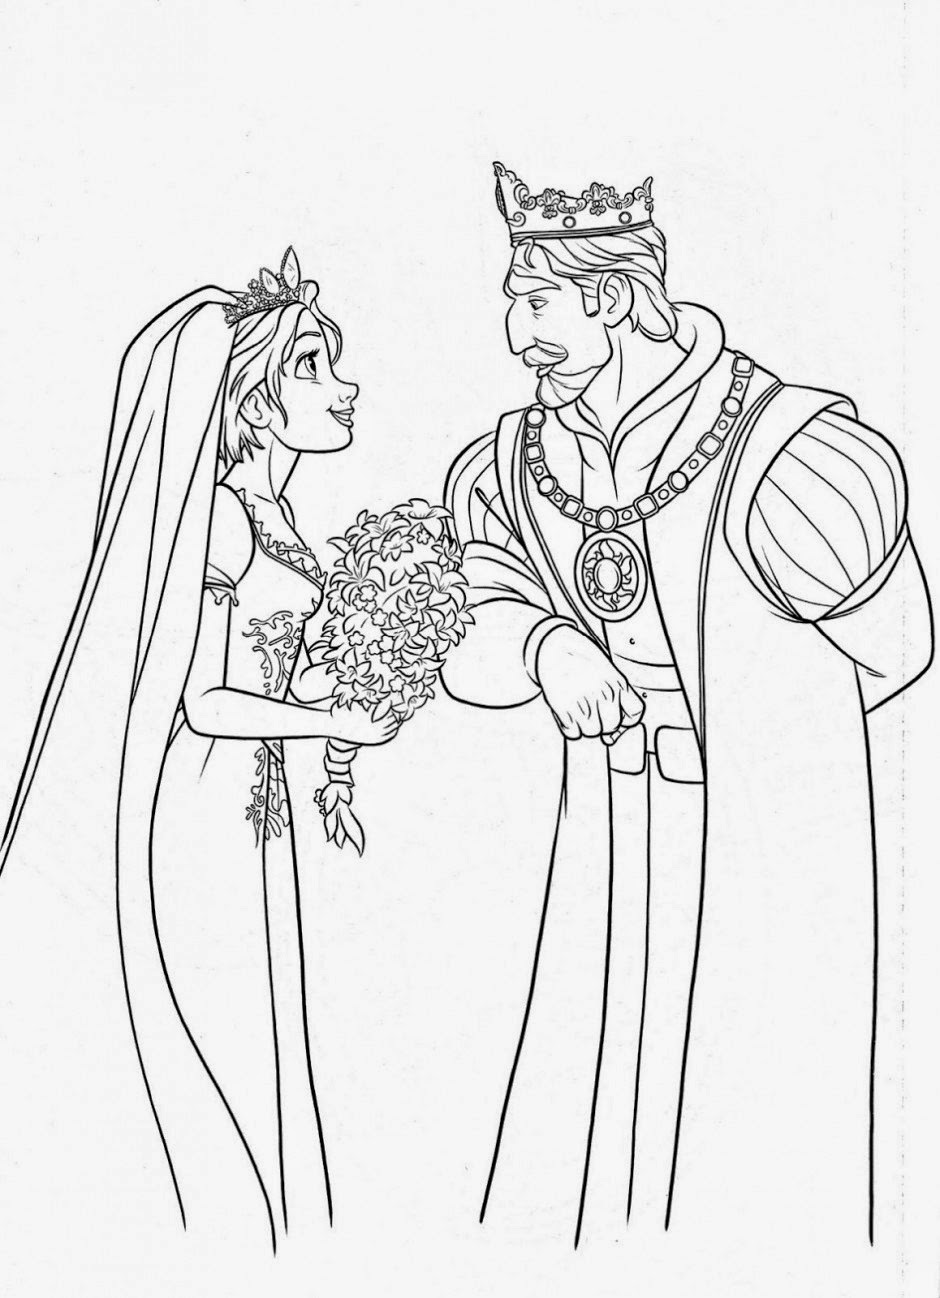 tangled coloring page tangled coloring pages printable activity shelter tangled coloring page